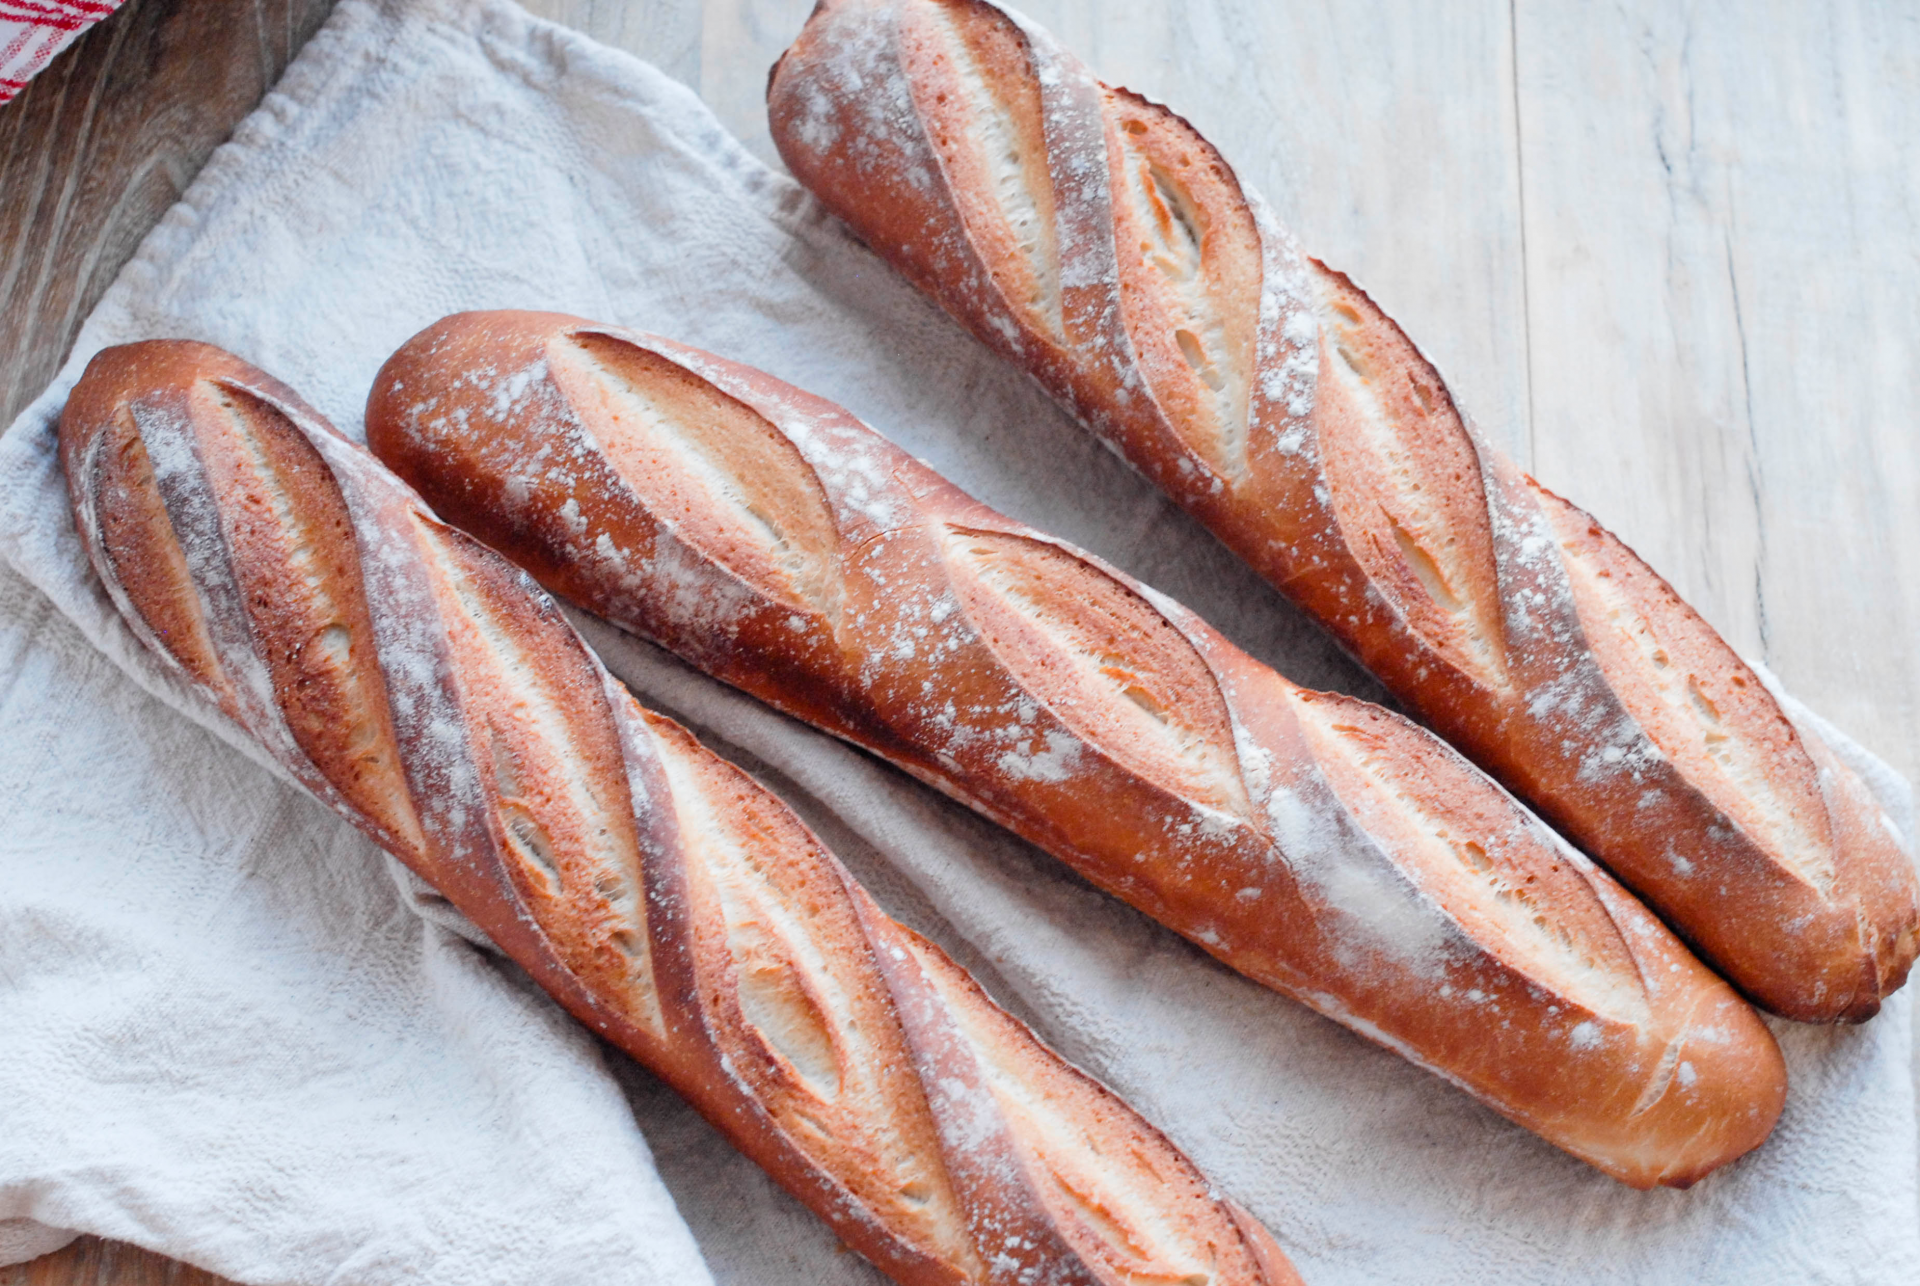 The Secret of French La Baguette: What Makes The Most Iconic Symbol